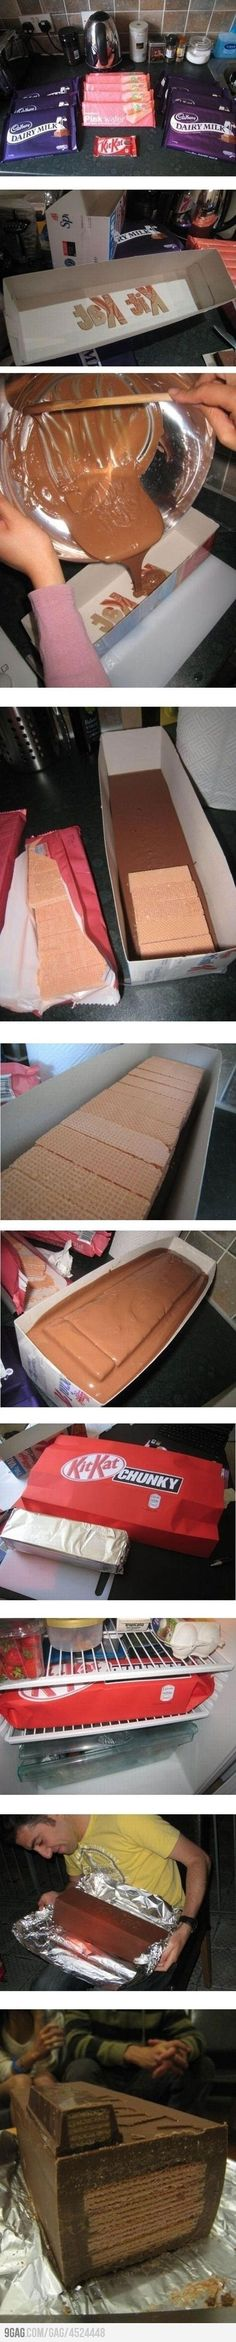 Kit Kats im absolutely doing this, so cool